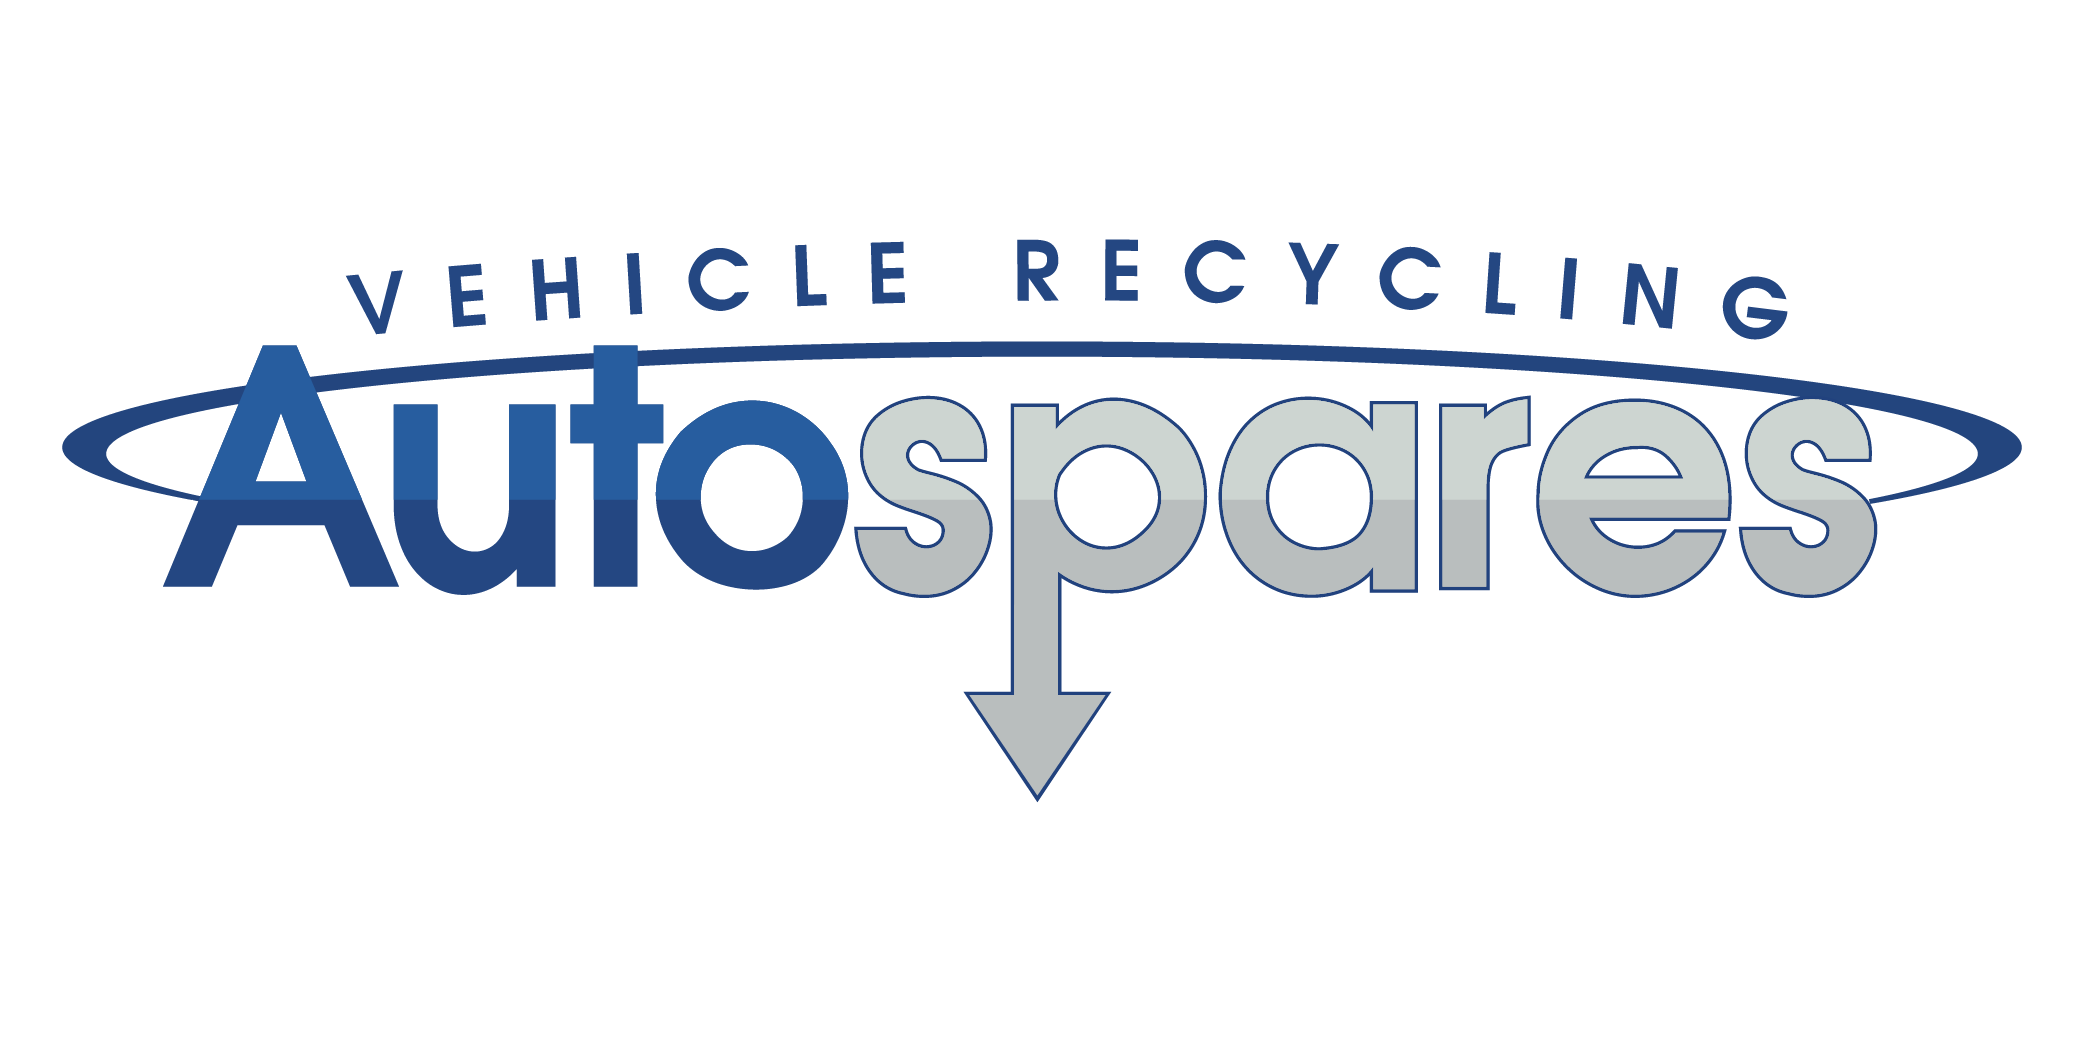 Autospares Vehicle Recycling_FF-02